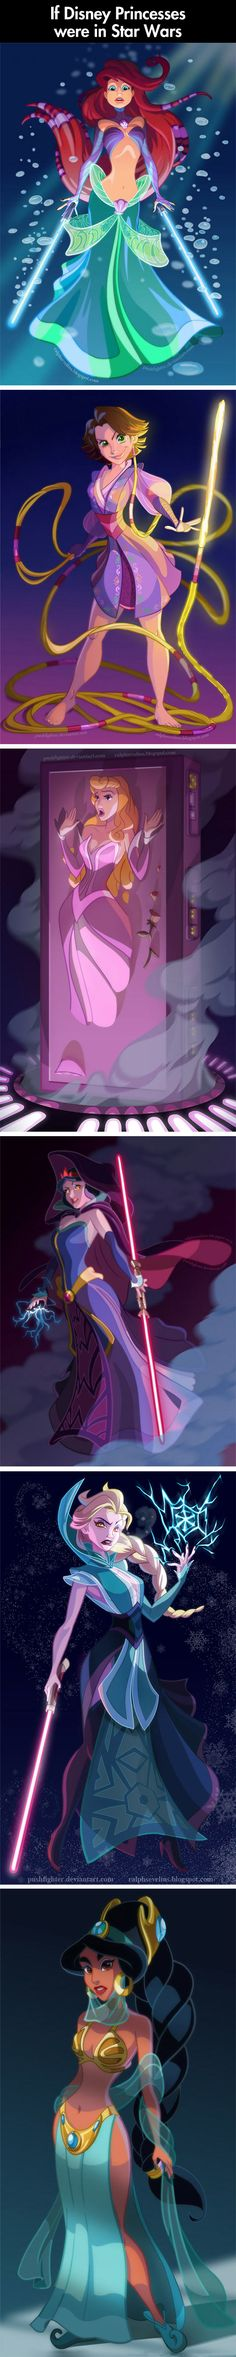 Star Wars Disney princesses